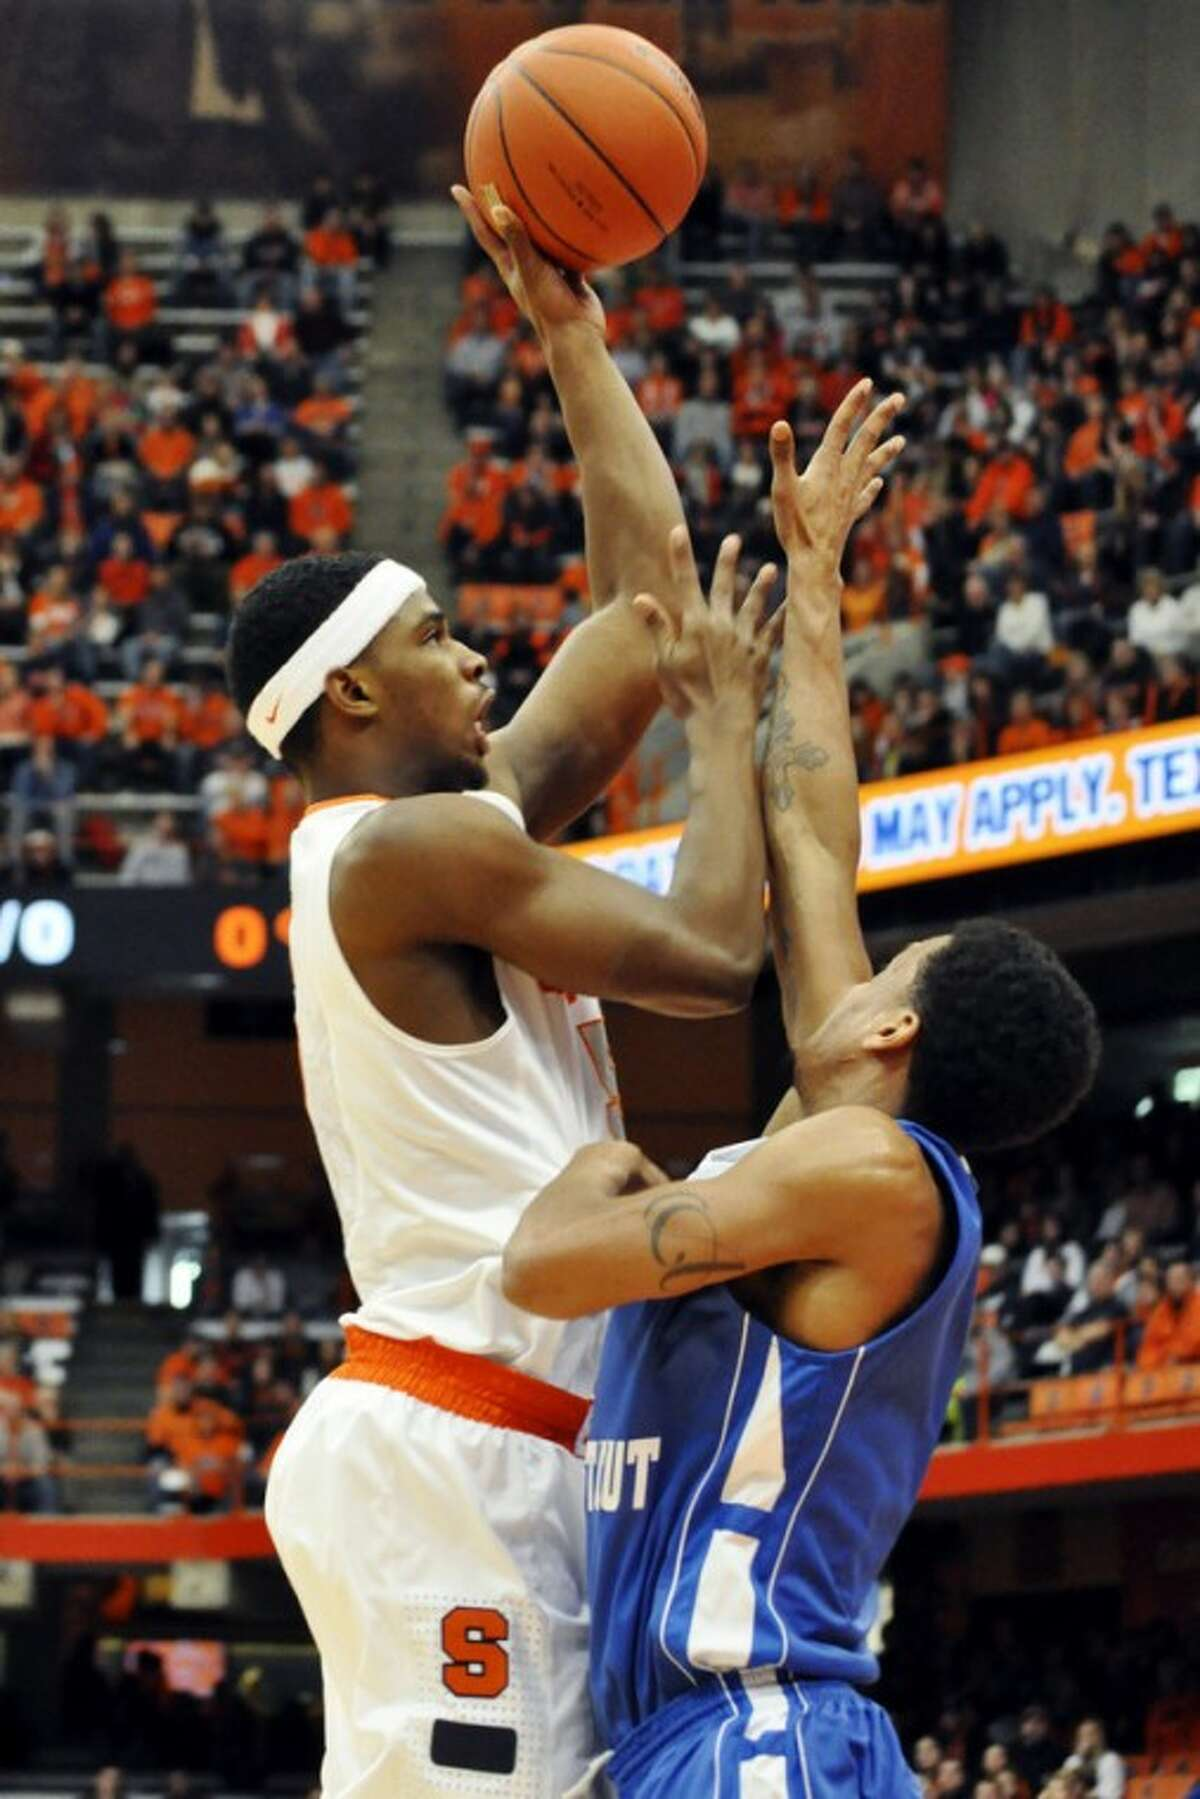 Syracuse's C. J. Fair shoots over Central Connecticut State's Adonis Burbage during the first half of an NCAA college basketball game in Syracuse, N.Y., Monday, Dec. 31, 2012. (AP Photo/Kevin Rivoli)